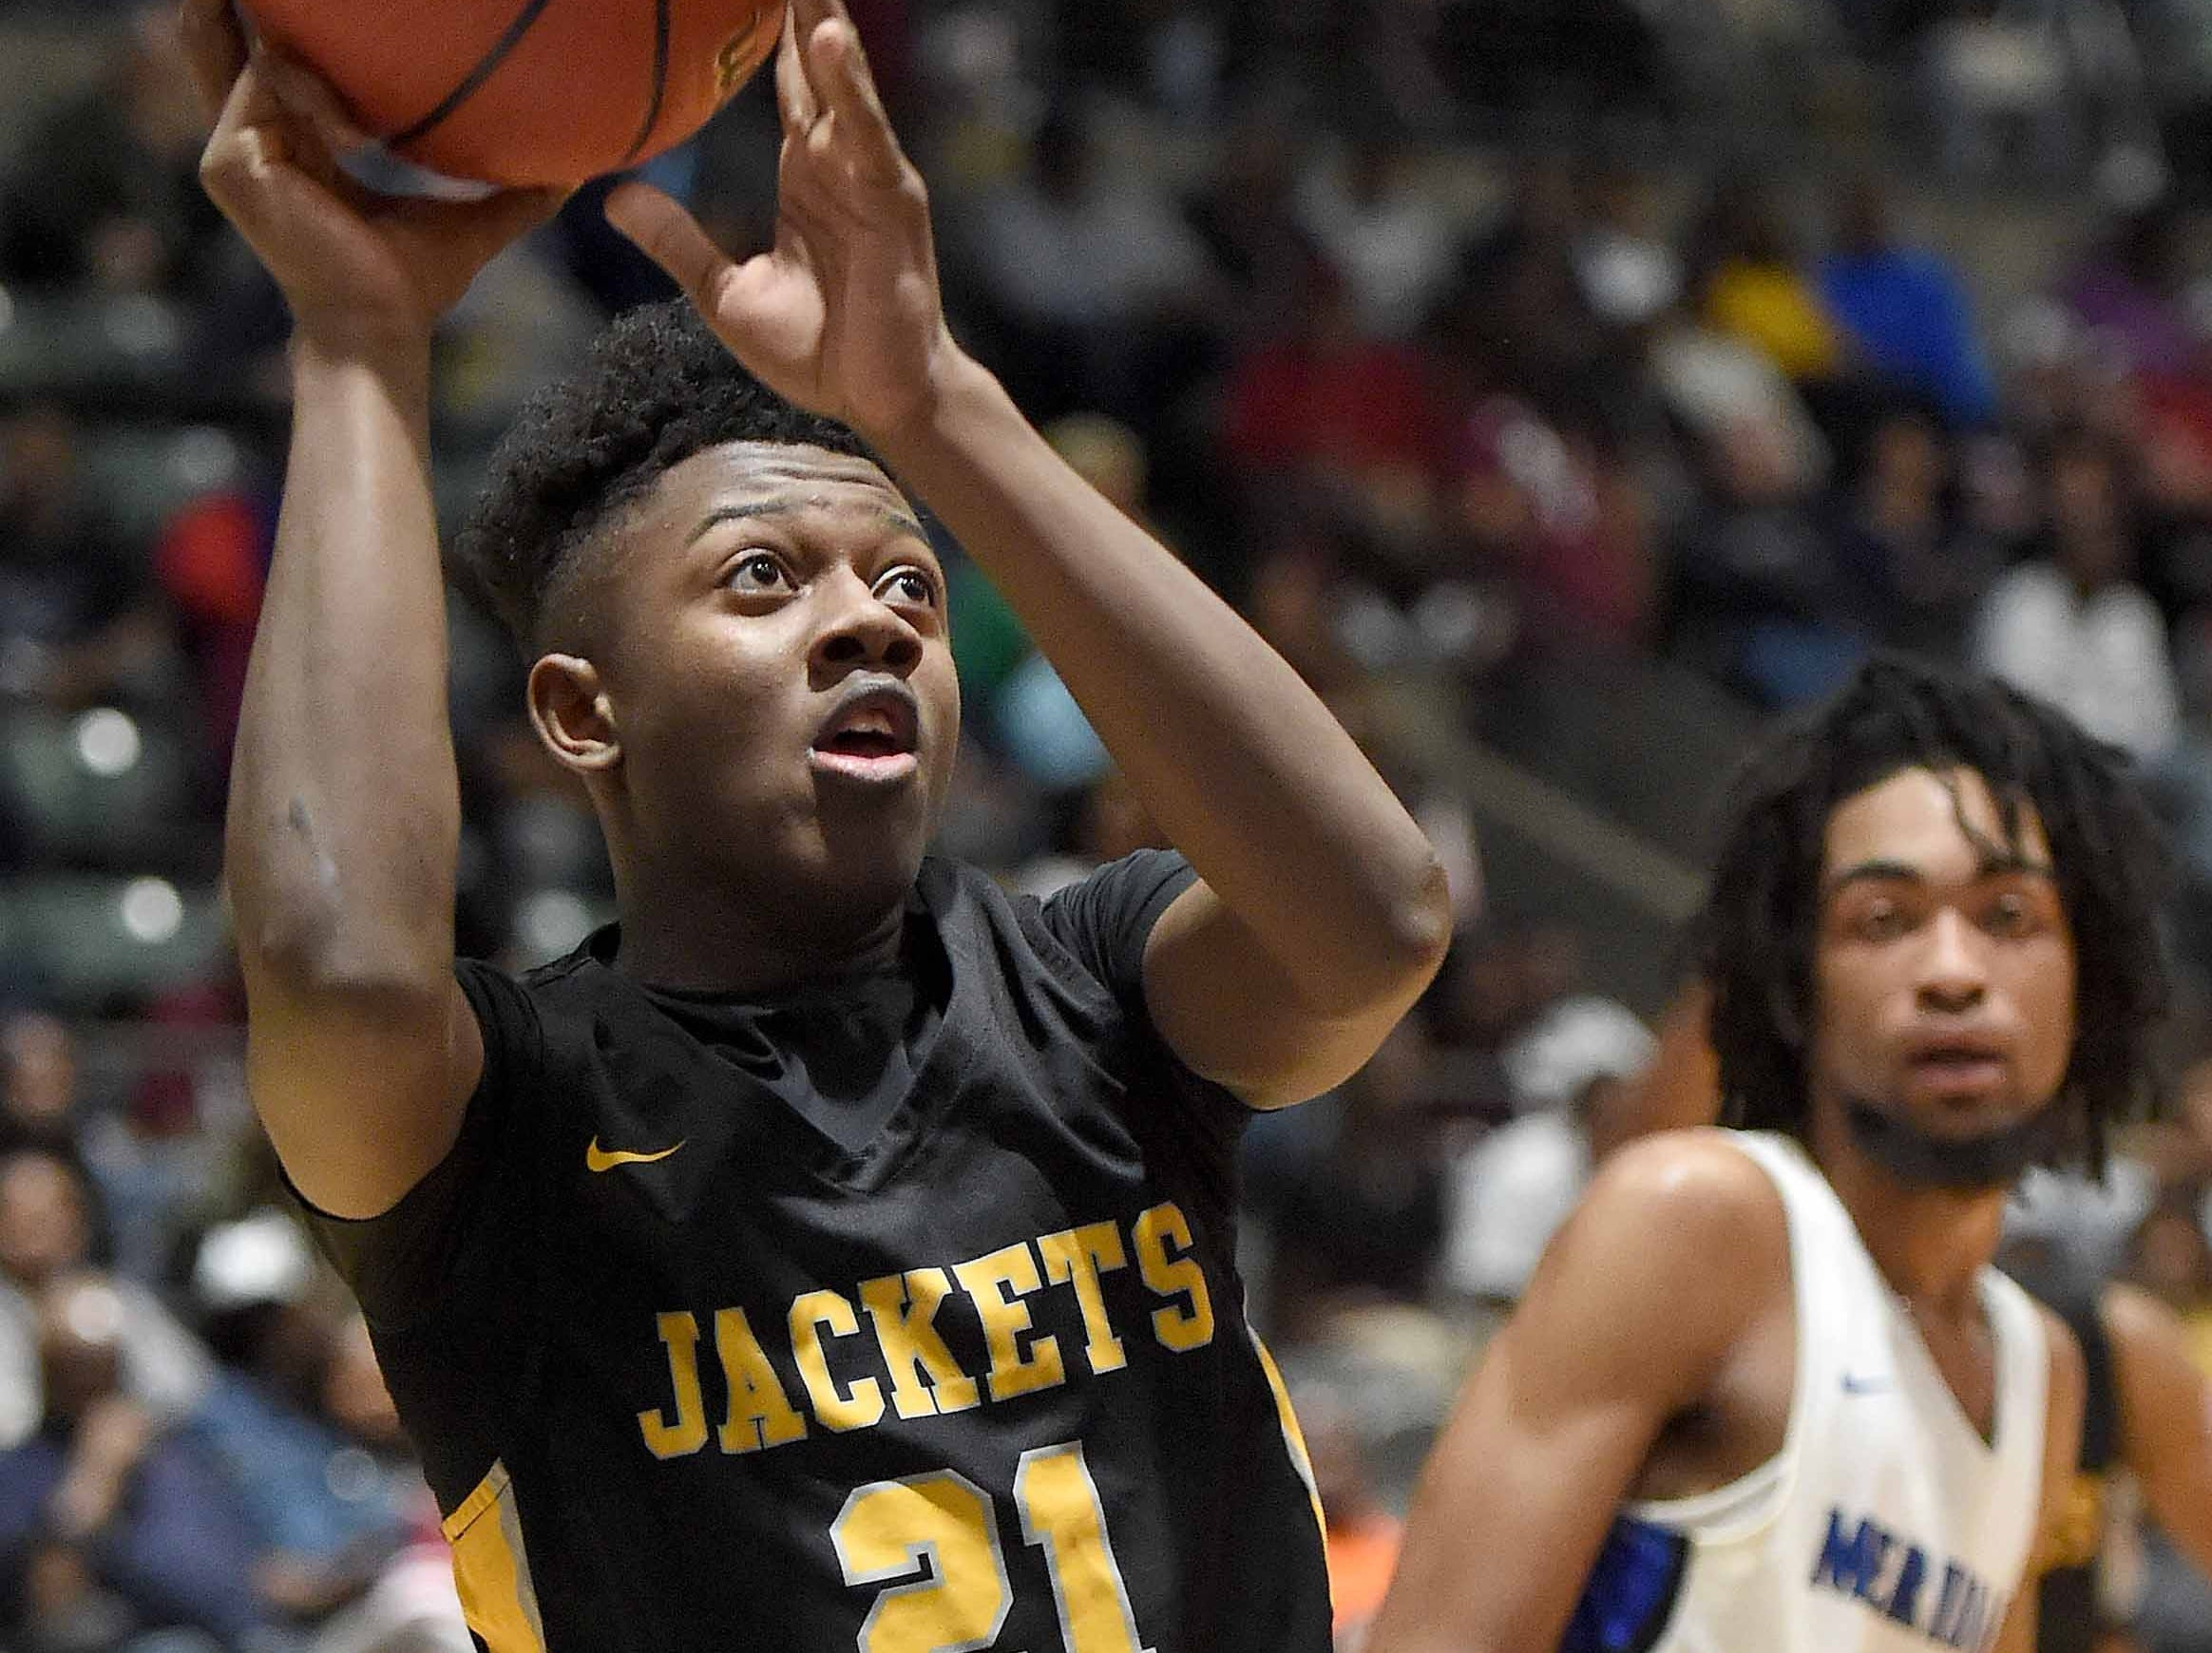 Starkville's Eric Green (21) shoots against Meridian in the Class 6A finals of the MHSAA C Spire State Basketball Championships at the Mississippi Coliseum in Jackson, Miss., on Saturday, March 9, 2019.